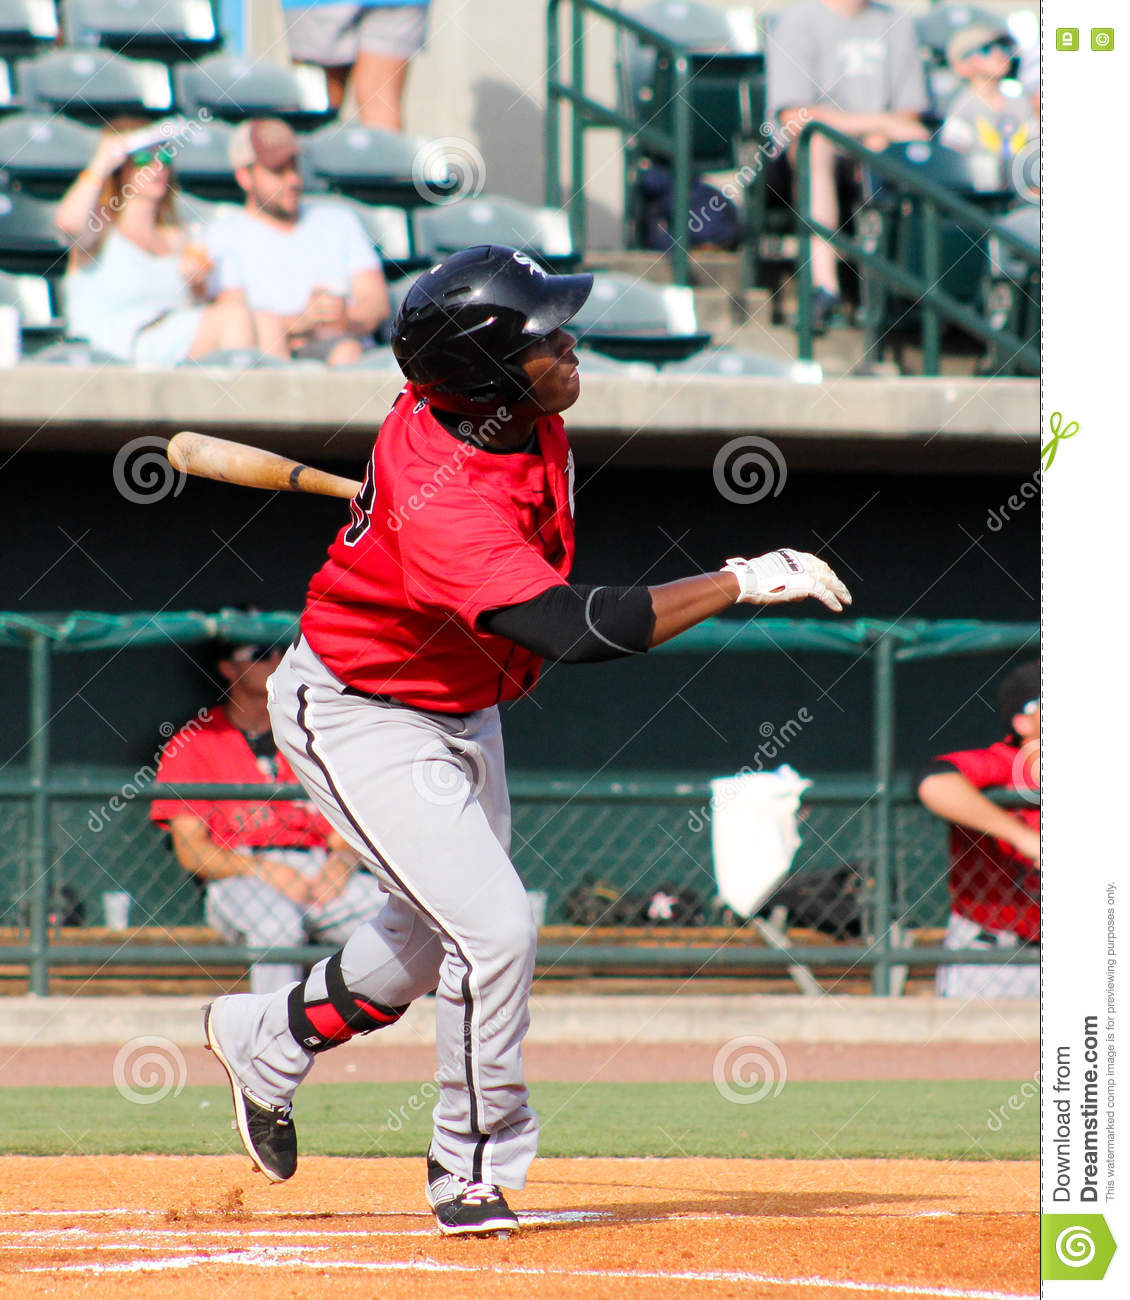 Homerun Swing Editorial Stock Photo Image Of Field 56623493